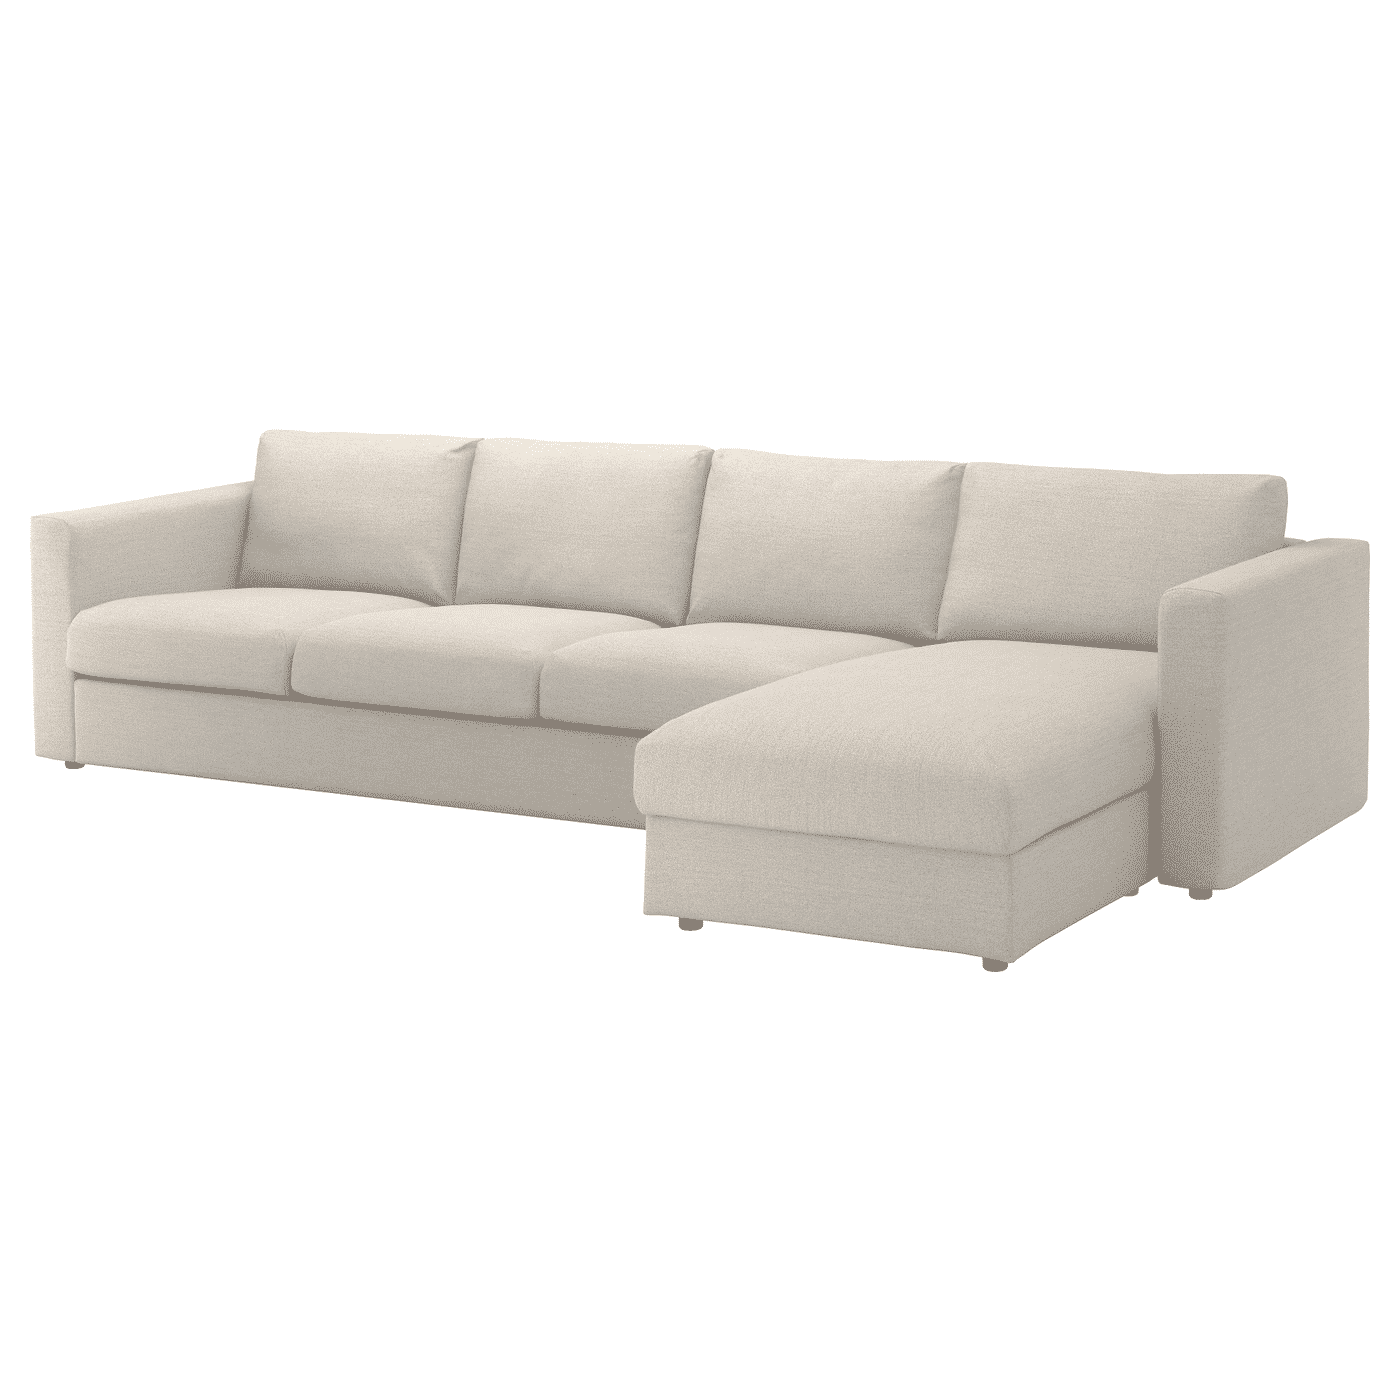 VIMLE 4 Seat Sectional